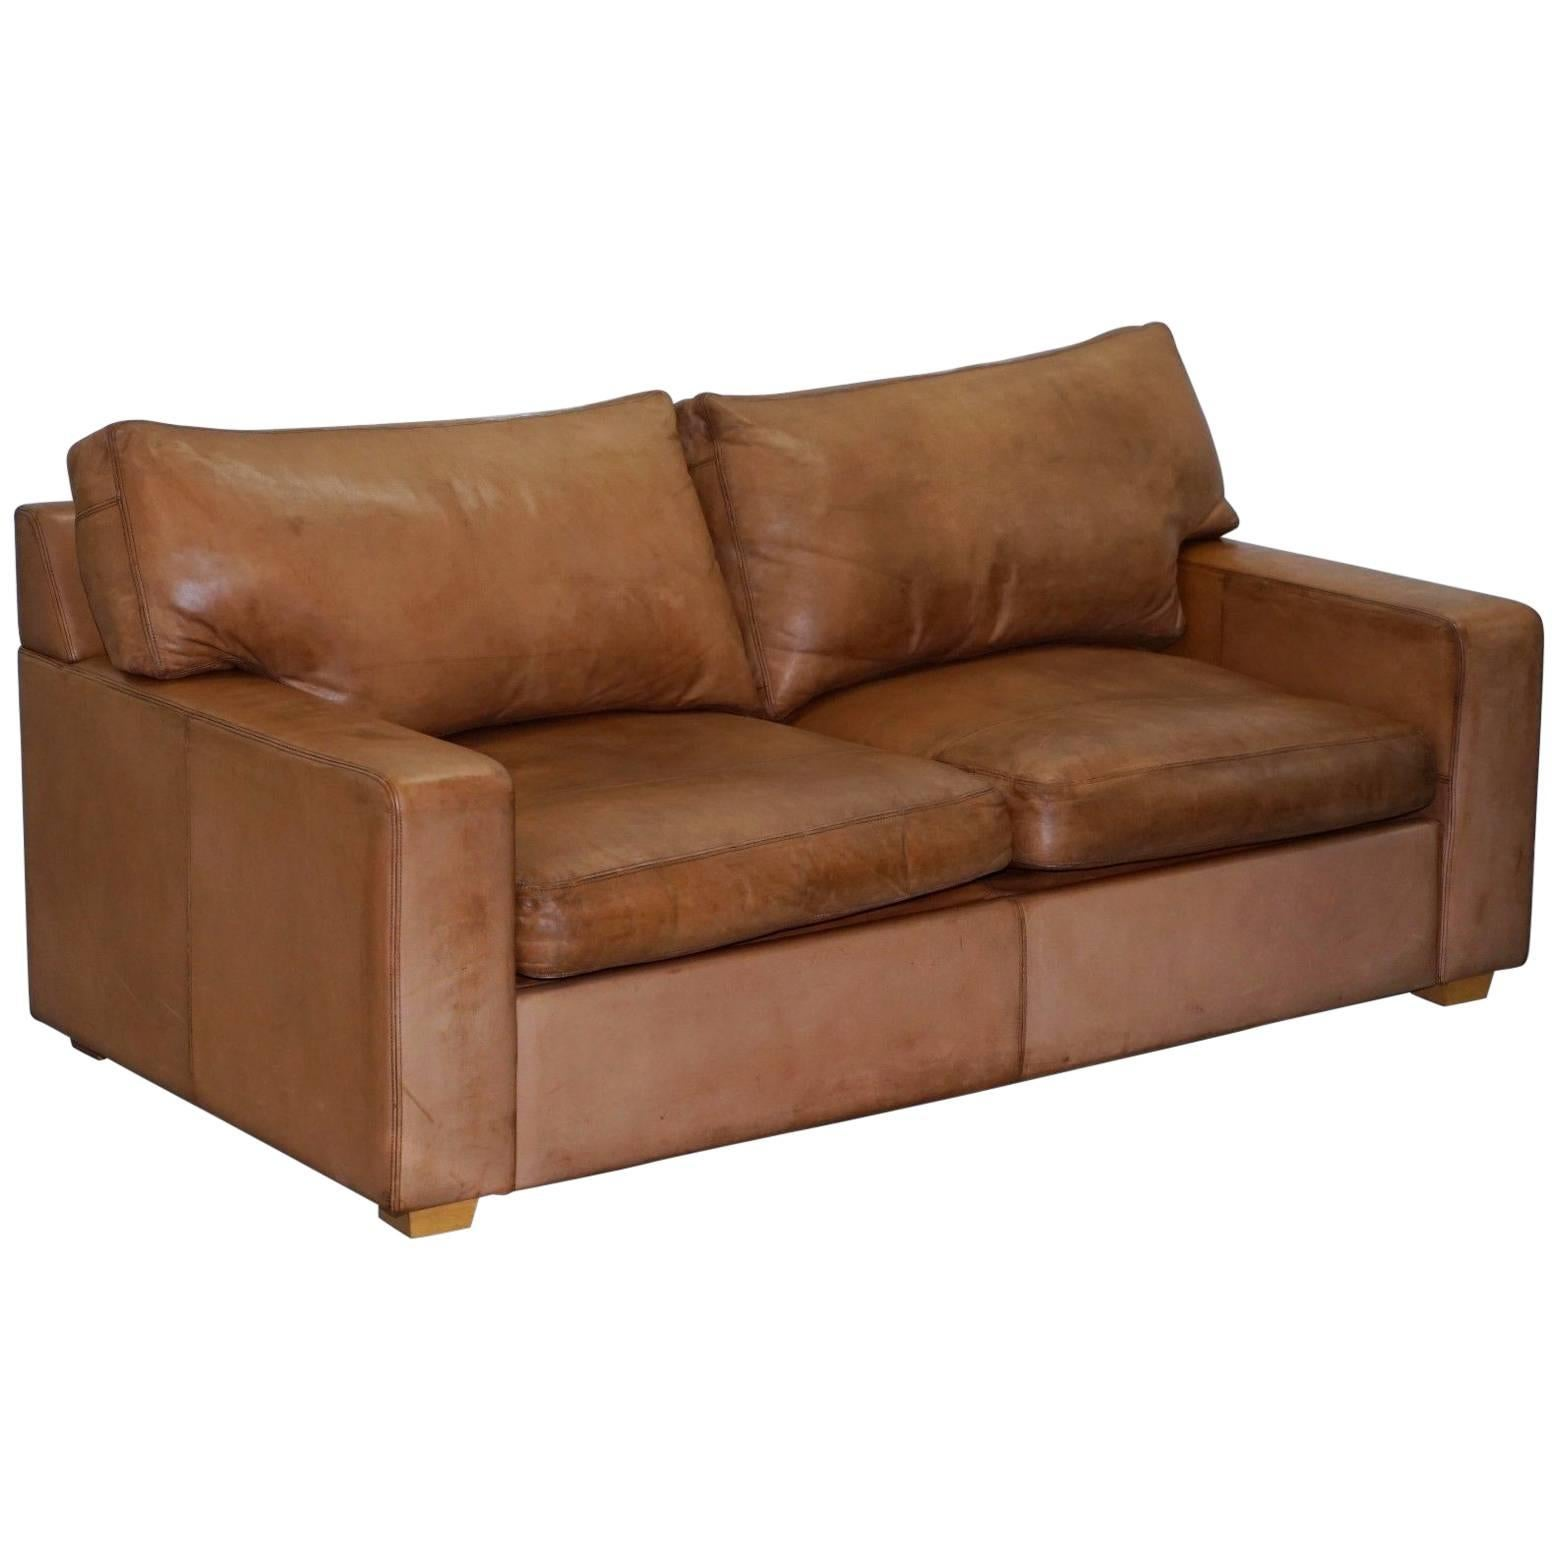 Collin And Hayes Aged Brown Leather Sofa Bed With Feather Filled Cushions  For Sale